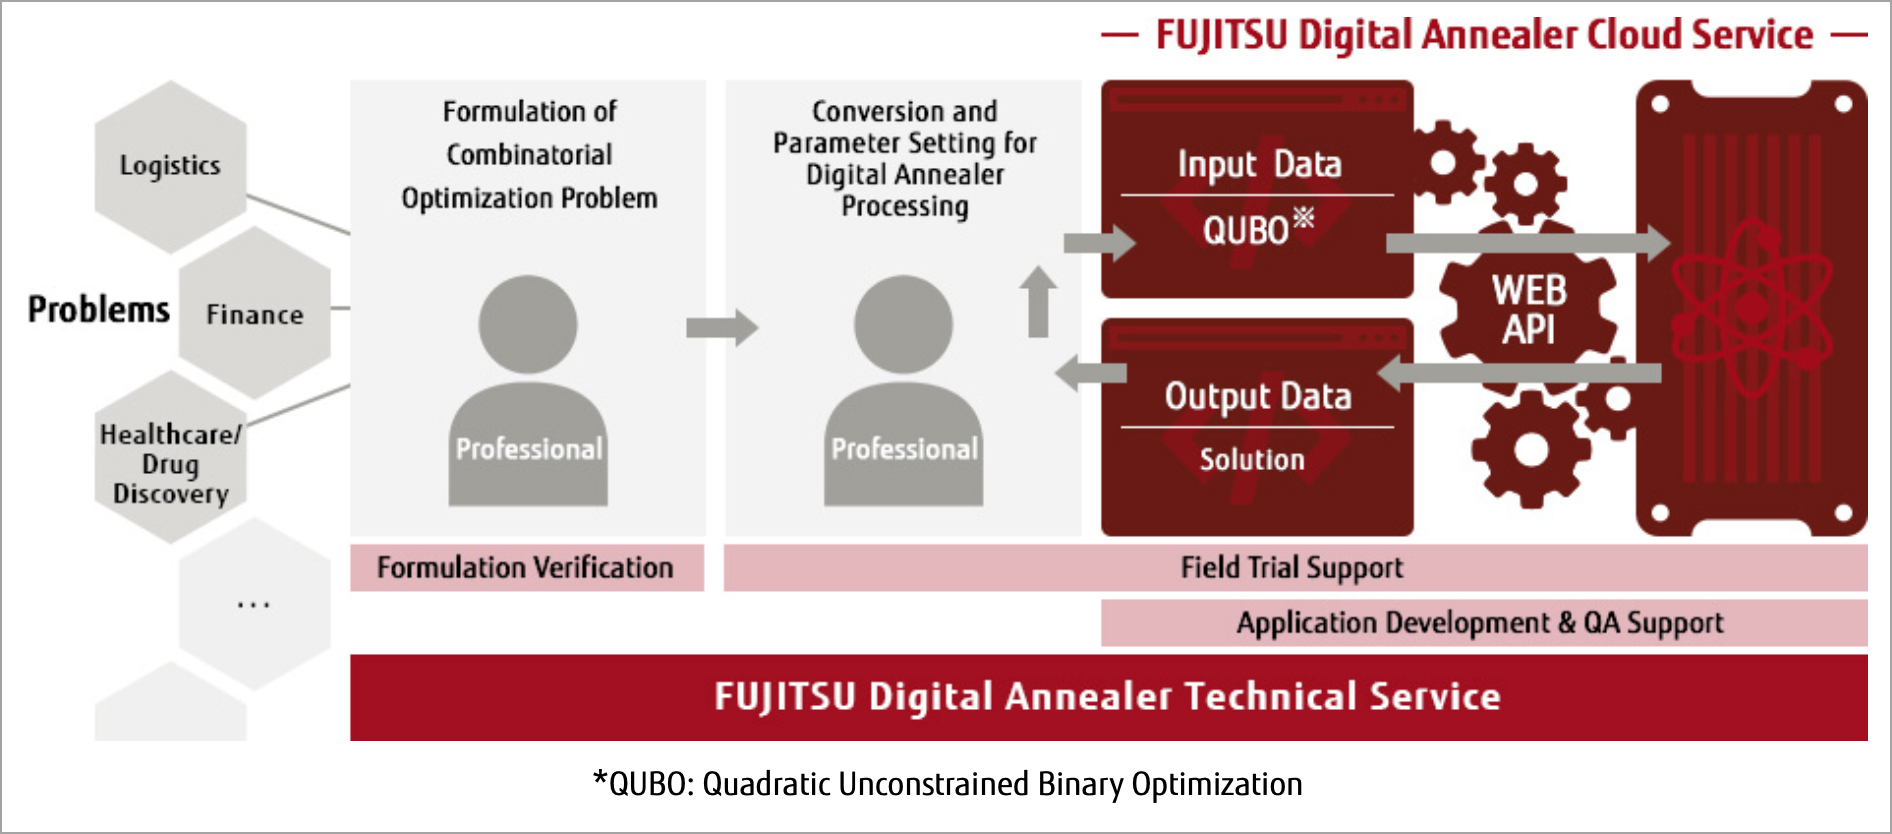 Fujitsu Digital Annealer end-to-end service